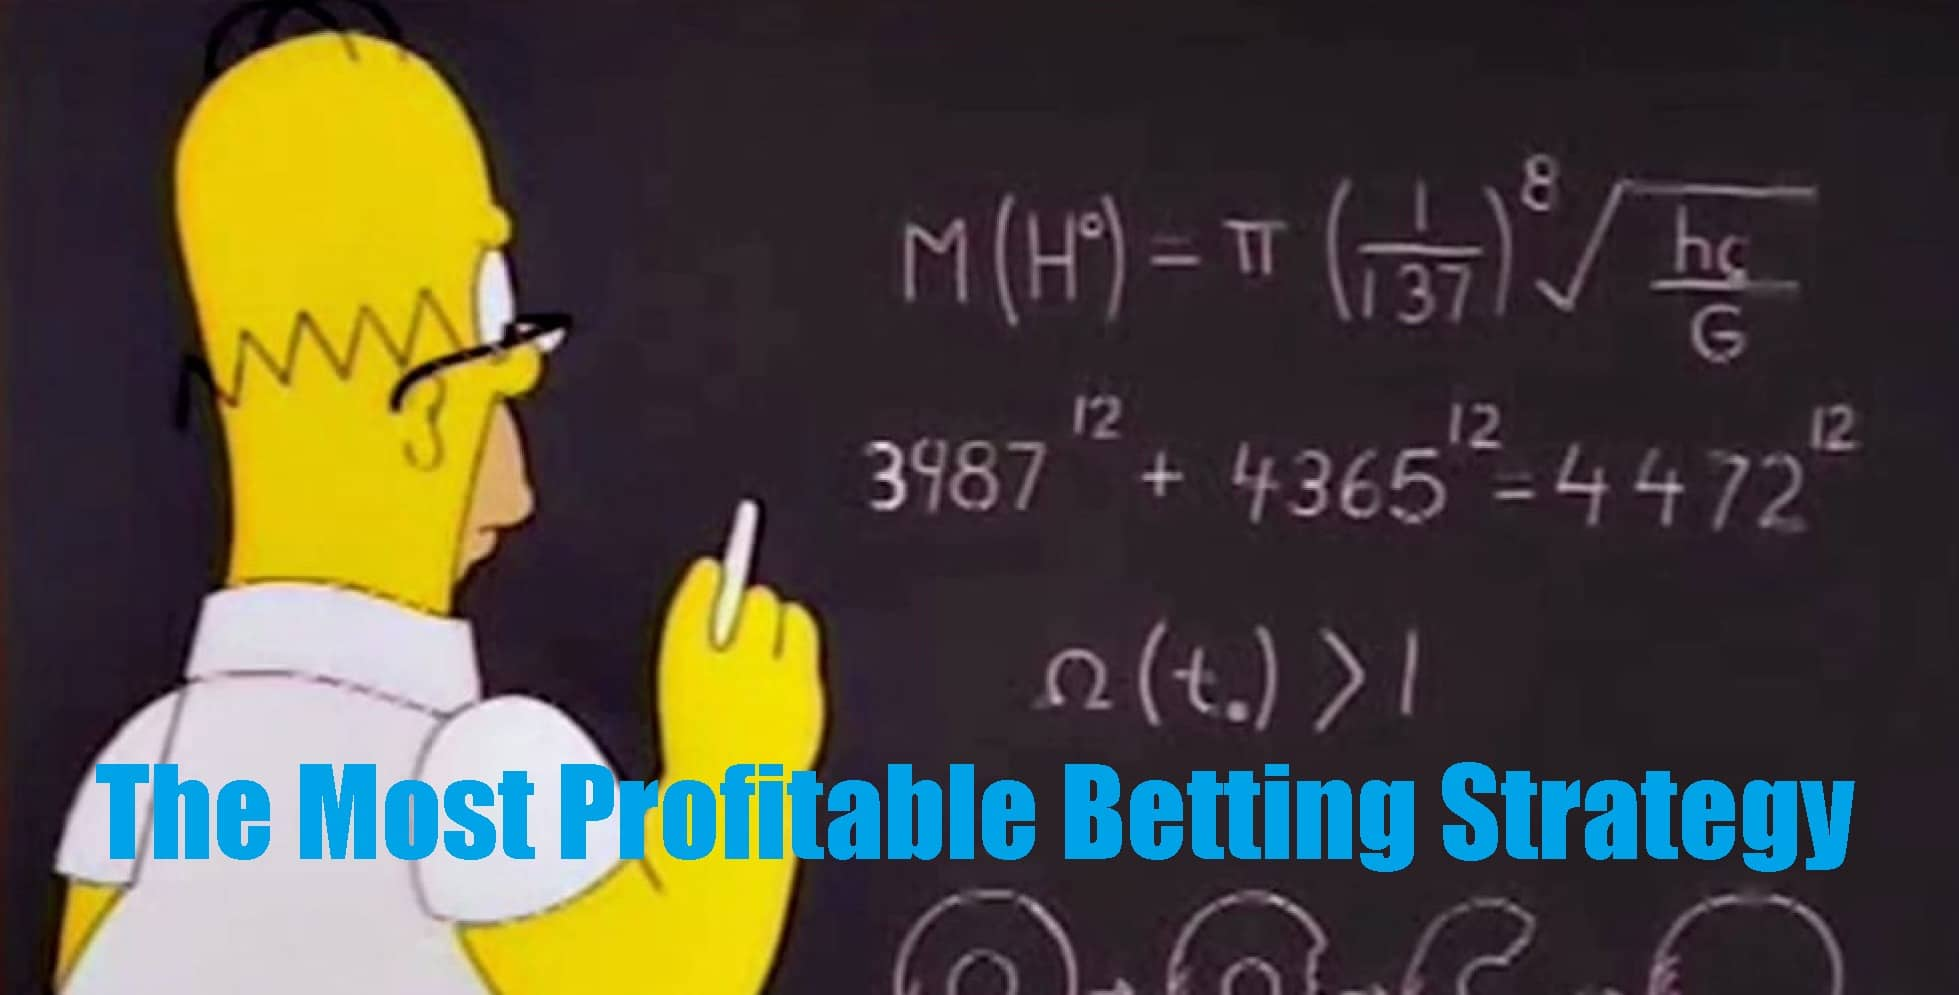 Consensus sports betting strategies uniplex nicosia betting